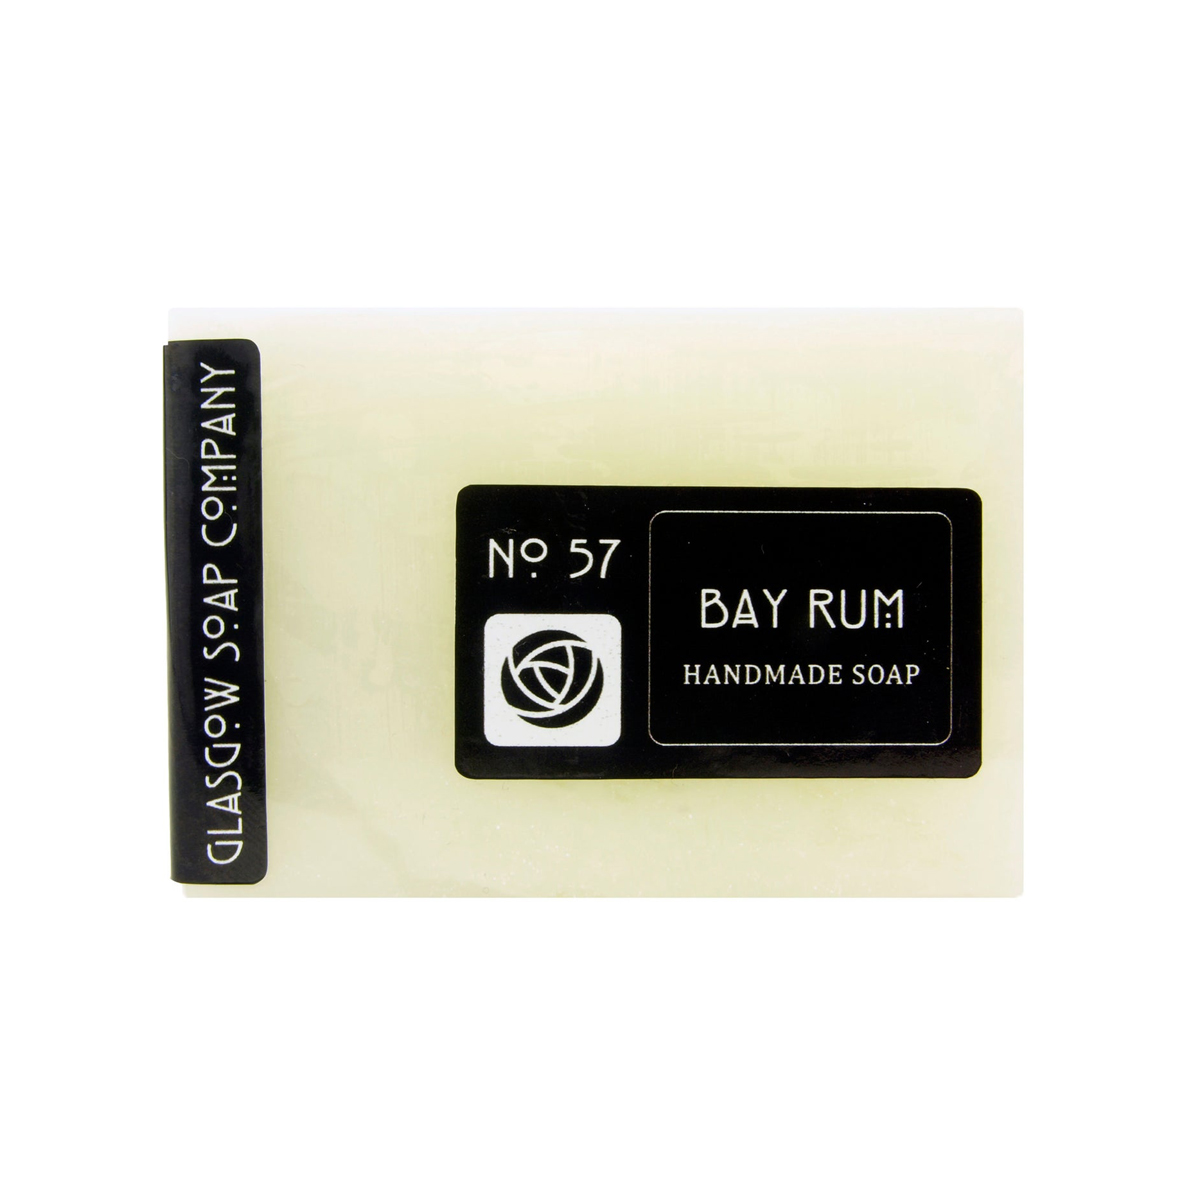 Bay Rum Soap Bar from Glasgow Soap Company